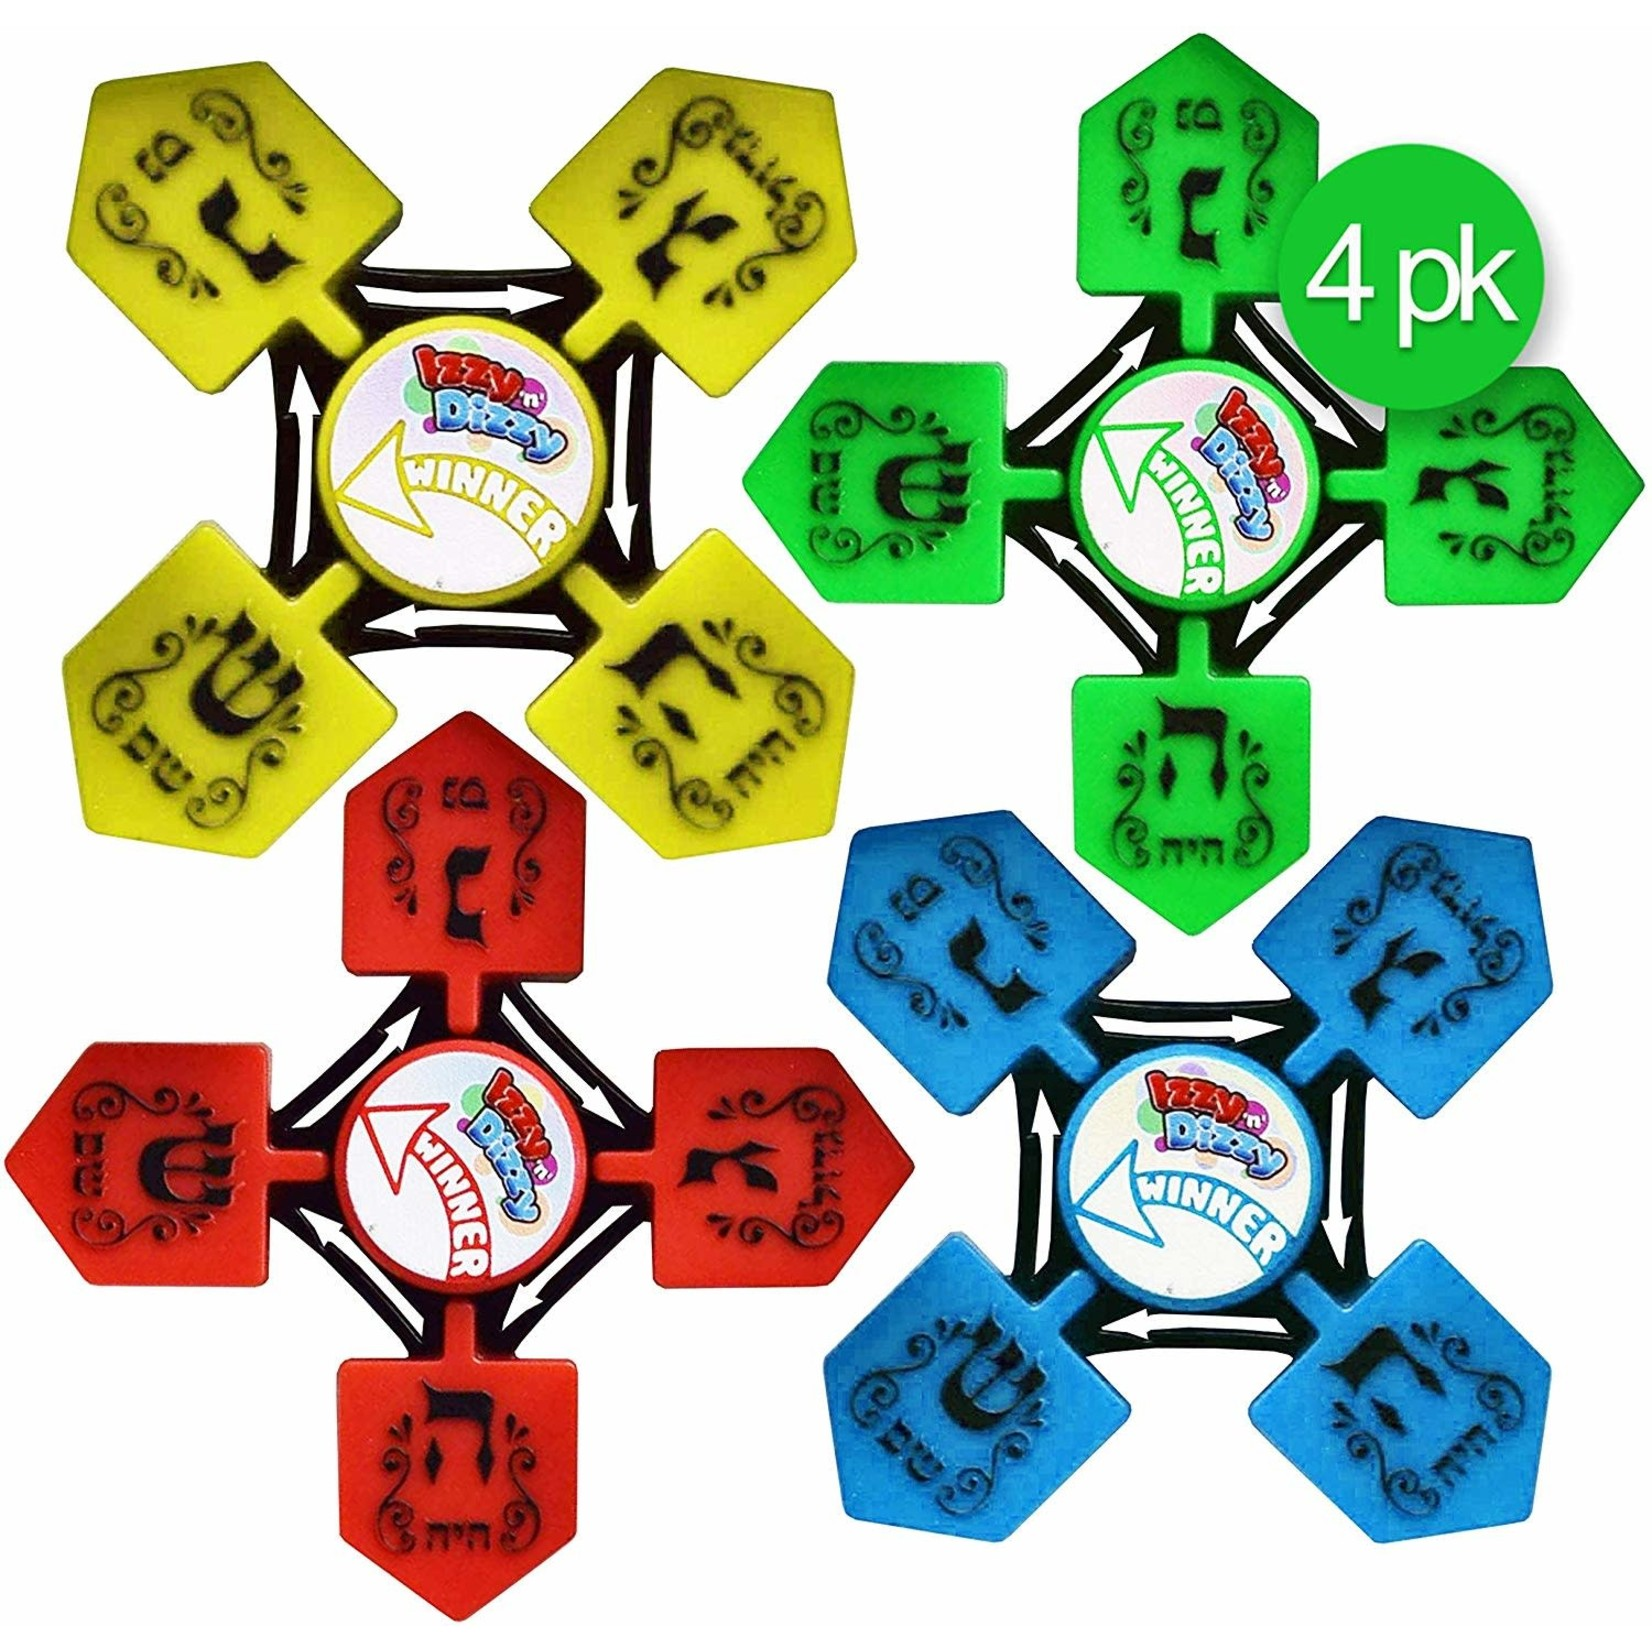 24 X Dreidel Spinners - solid colors